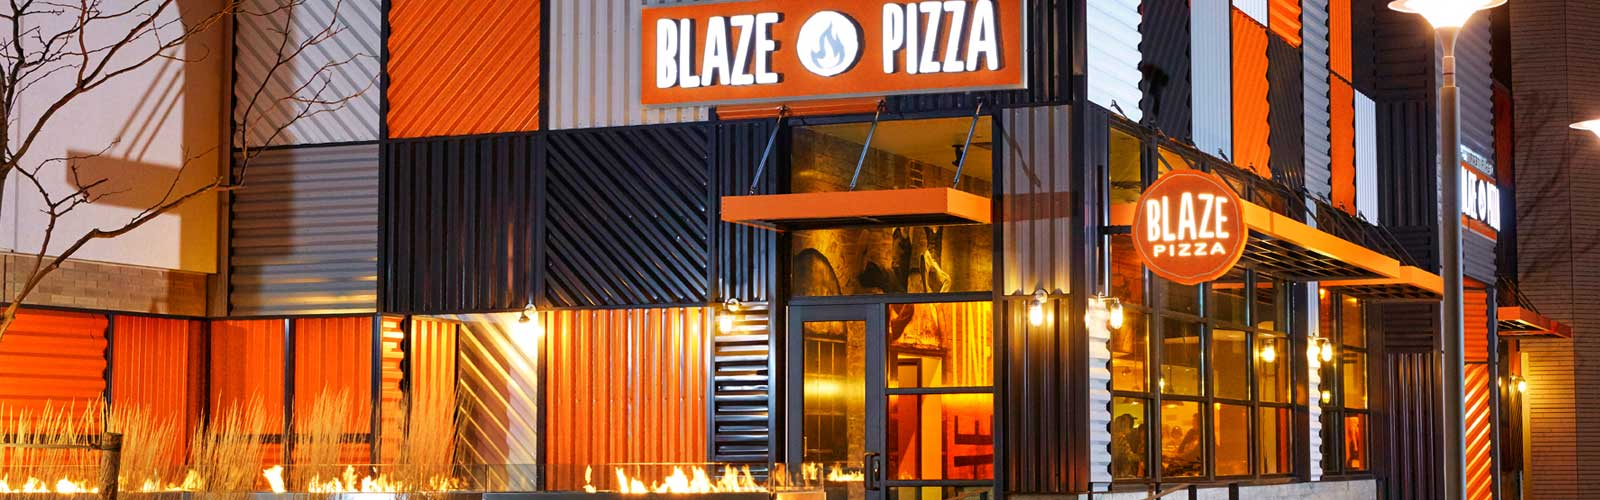 Blaze Pizza Lessing S A Tradition Of Excellence